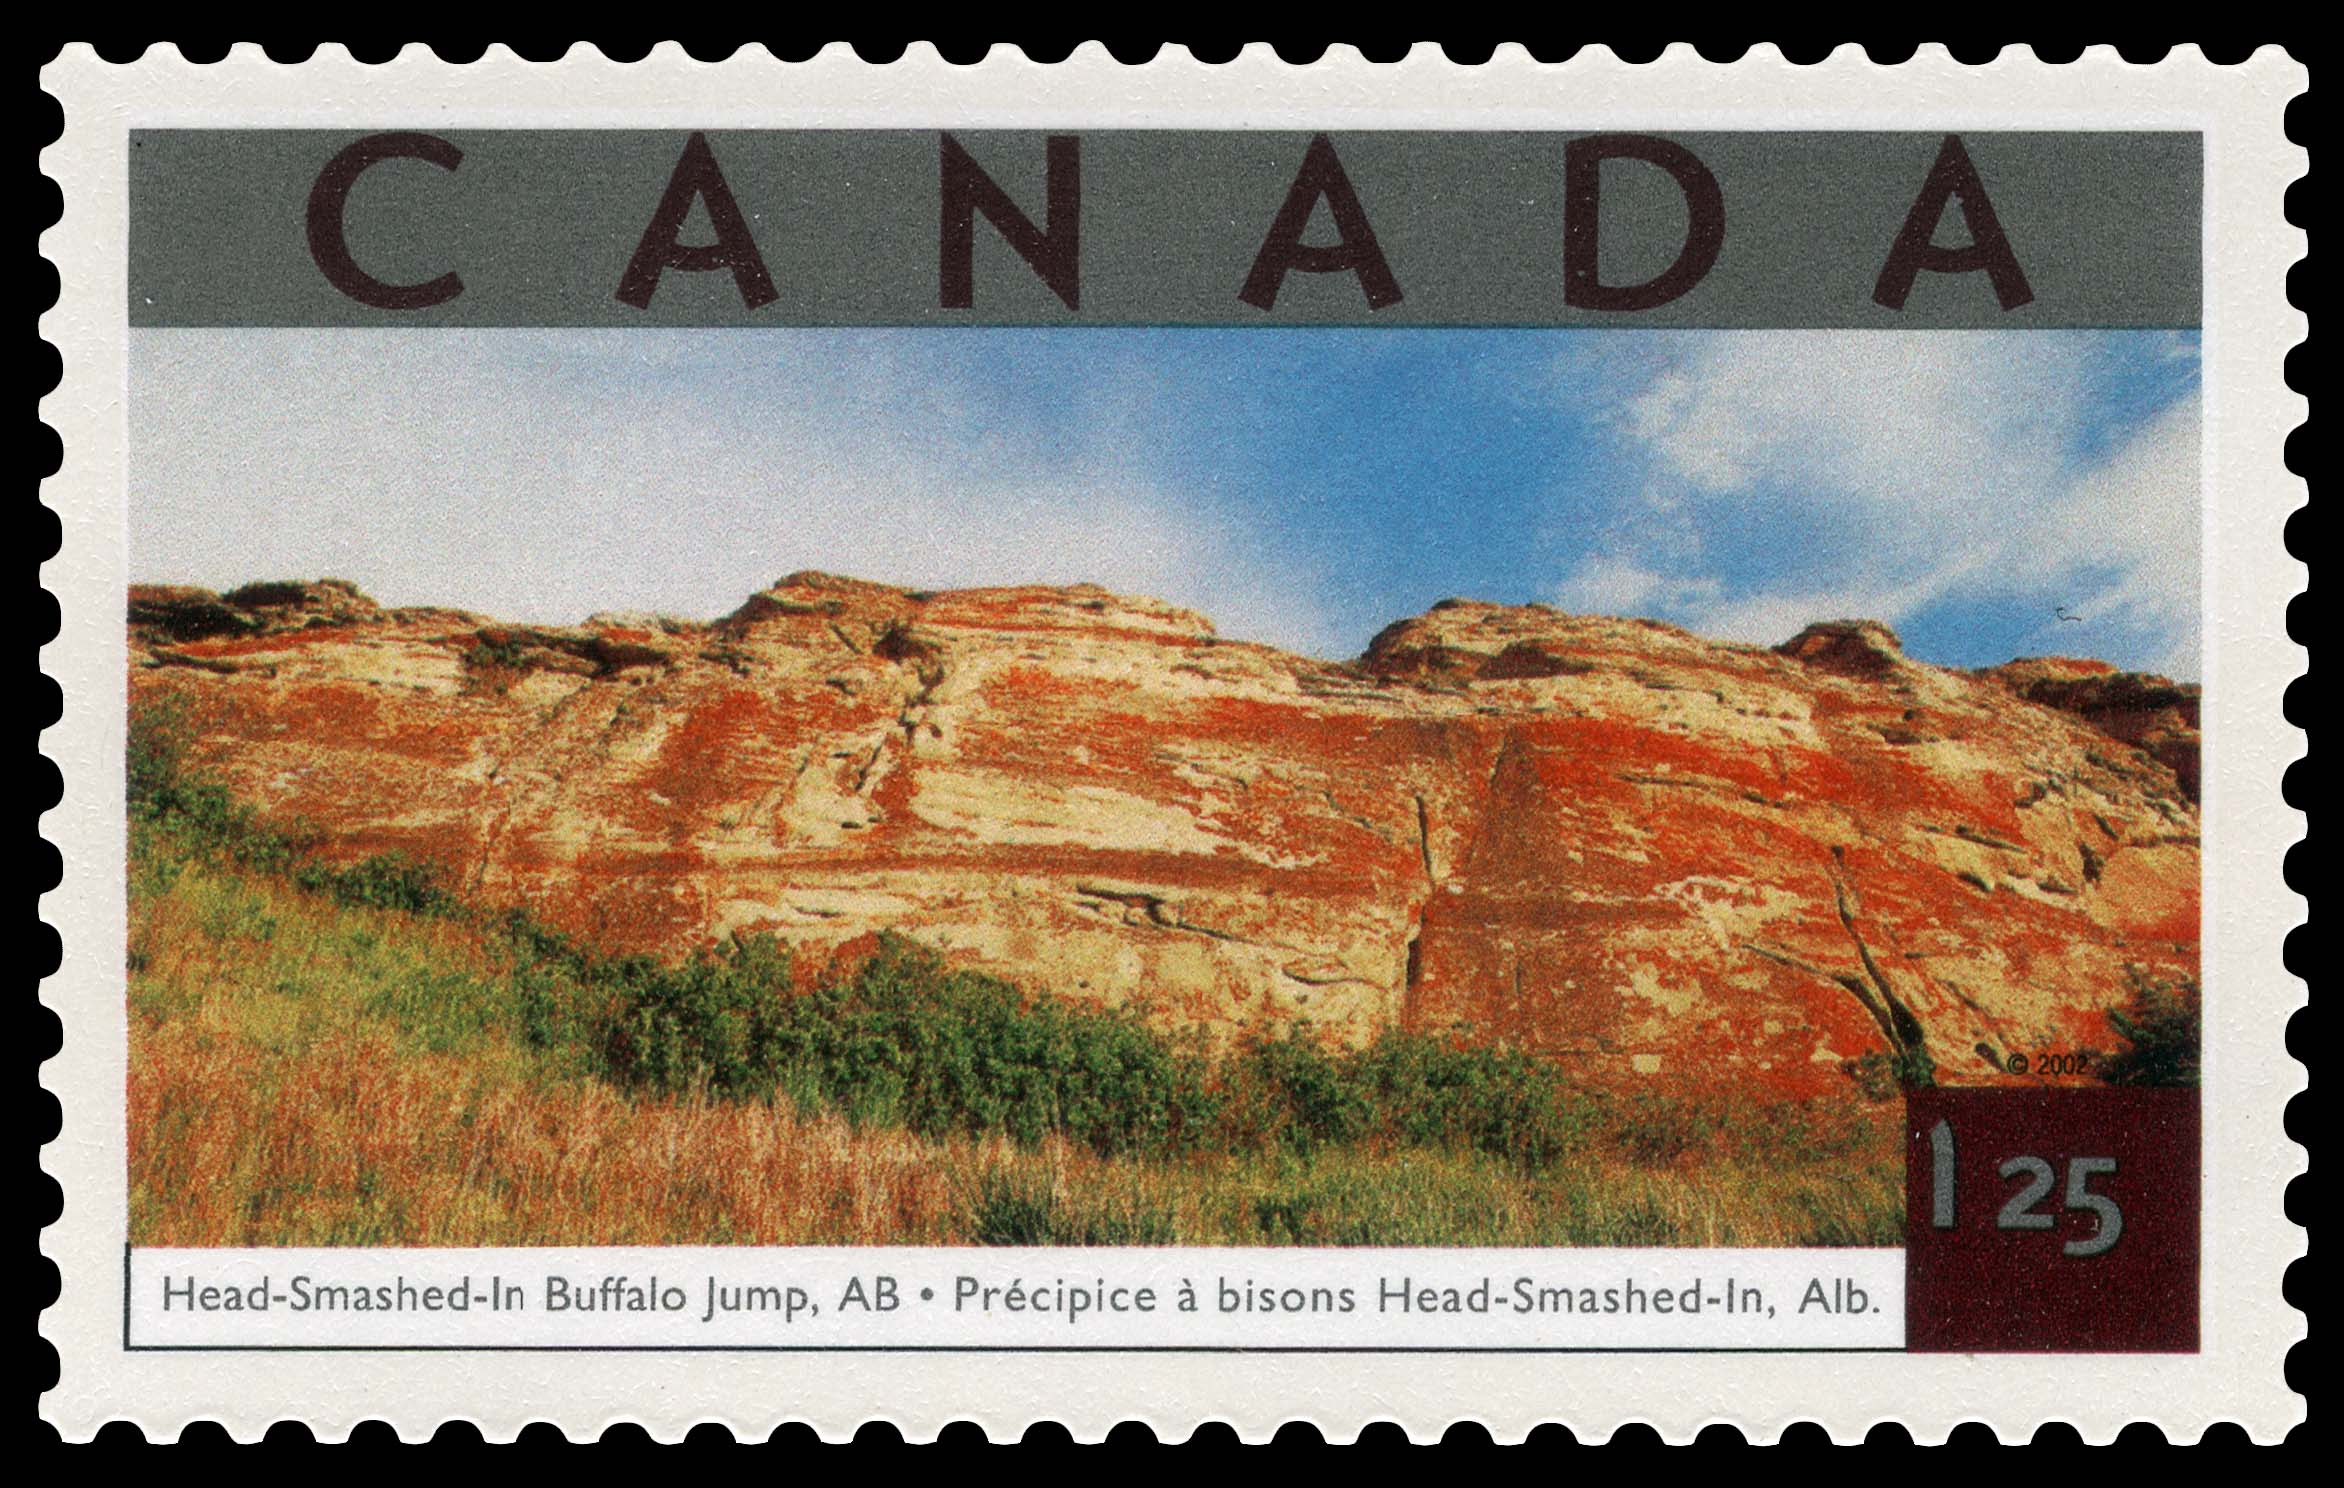 Head-Smashed-In Buffalo Jump, Alberta Canada Postage Stamp | Tourist Attractions